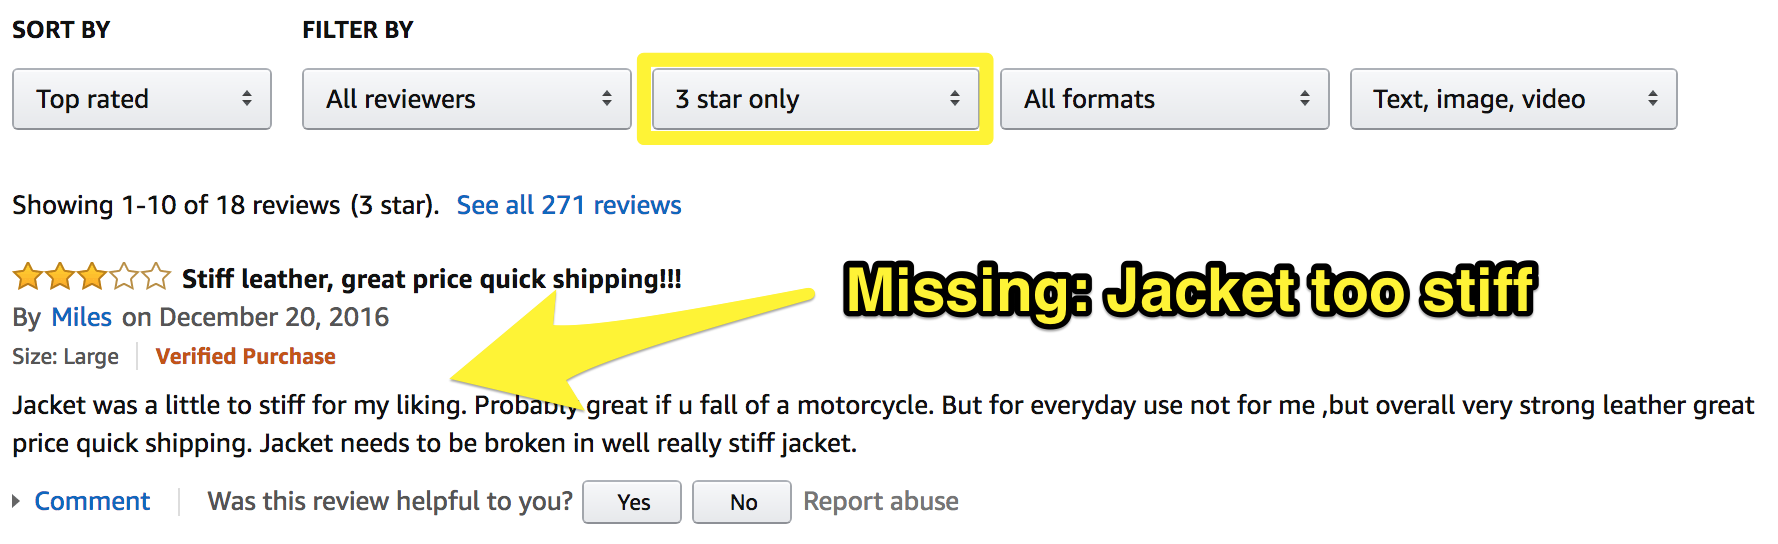 Screenshot showing an amazon review